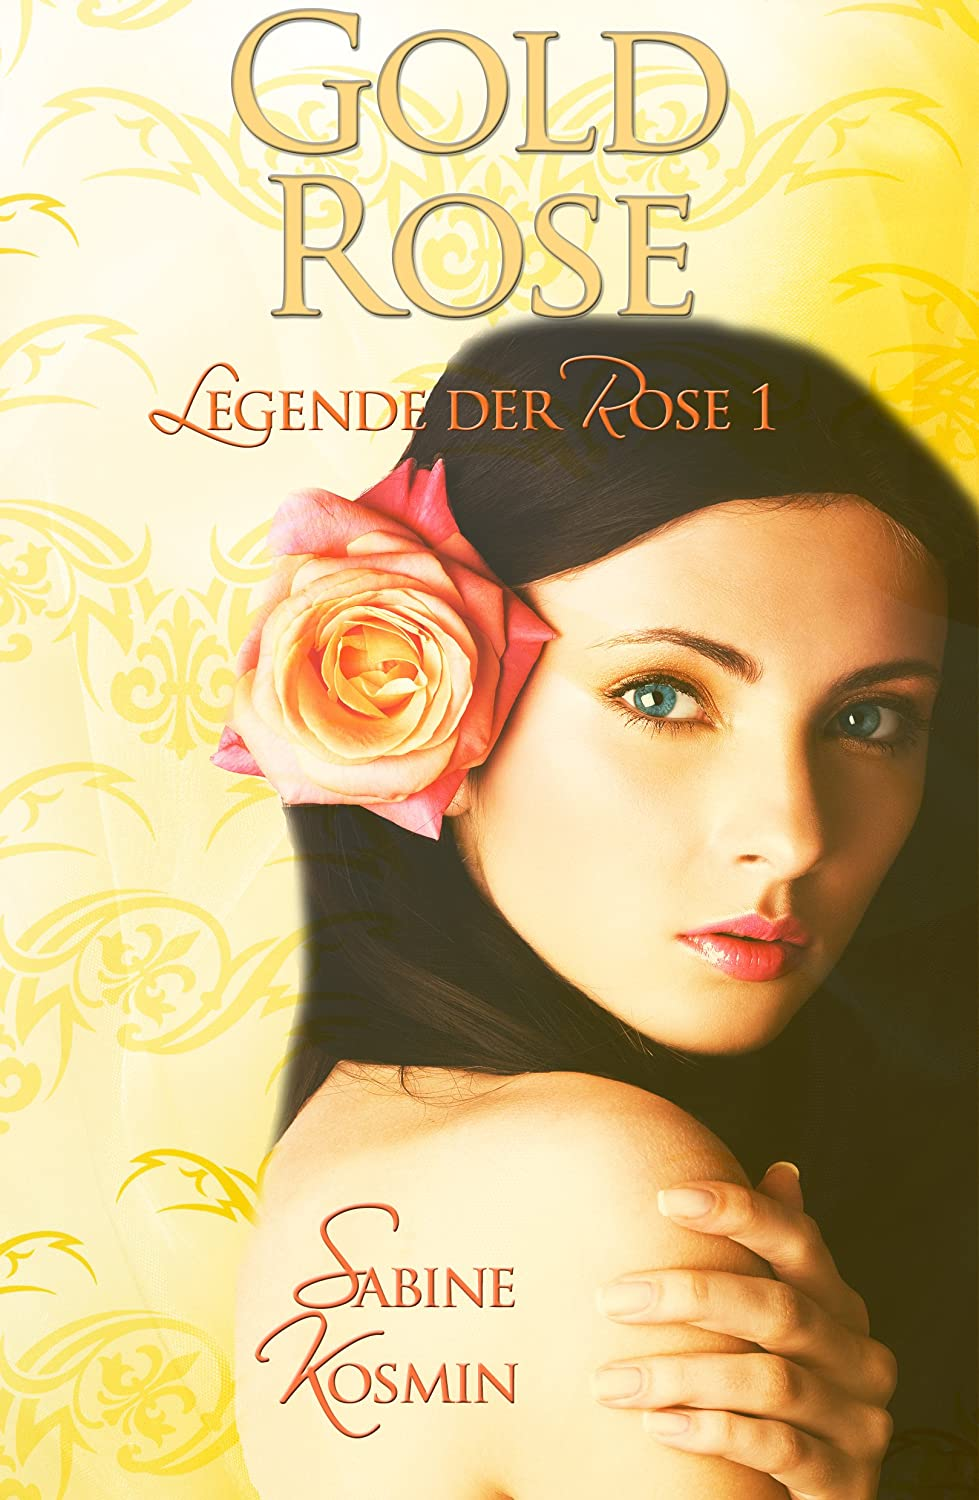 http://www.amazon.de/Goldrose-Legende-Rose-Sabine-Kosmin-ebook/dp/B00Q6SZGHM/ref=sr_1_1?s=books&ie=UTF8&qid=1429196455&sr=1-1&keywords=goldrose